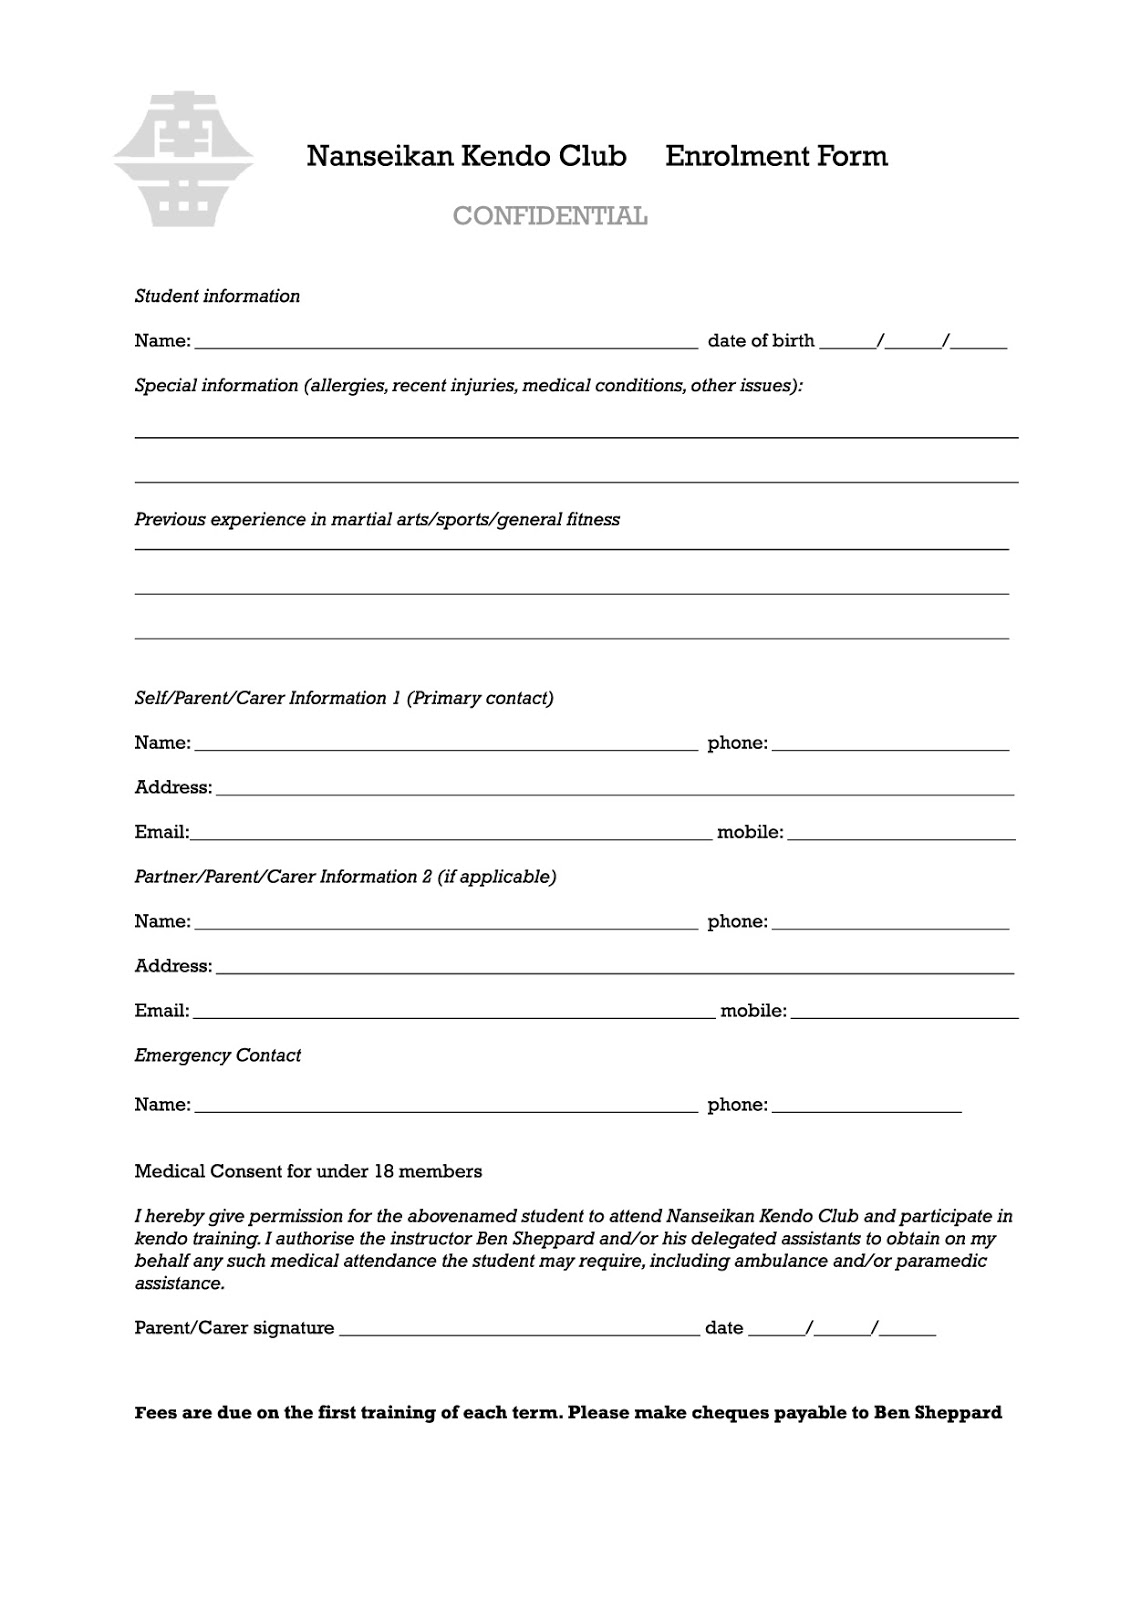 Course enrolment form template choice image template for Course enrolment form template